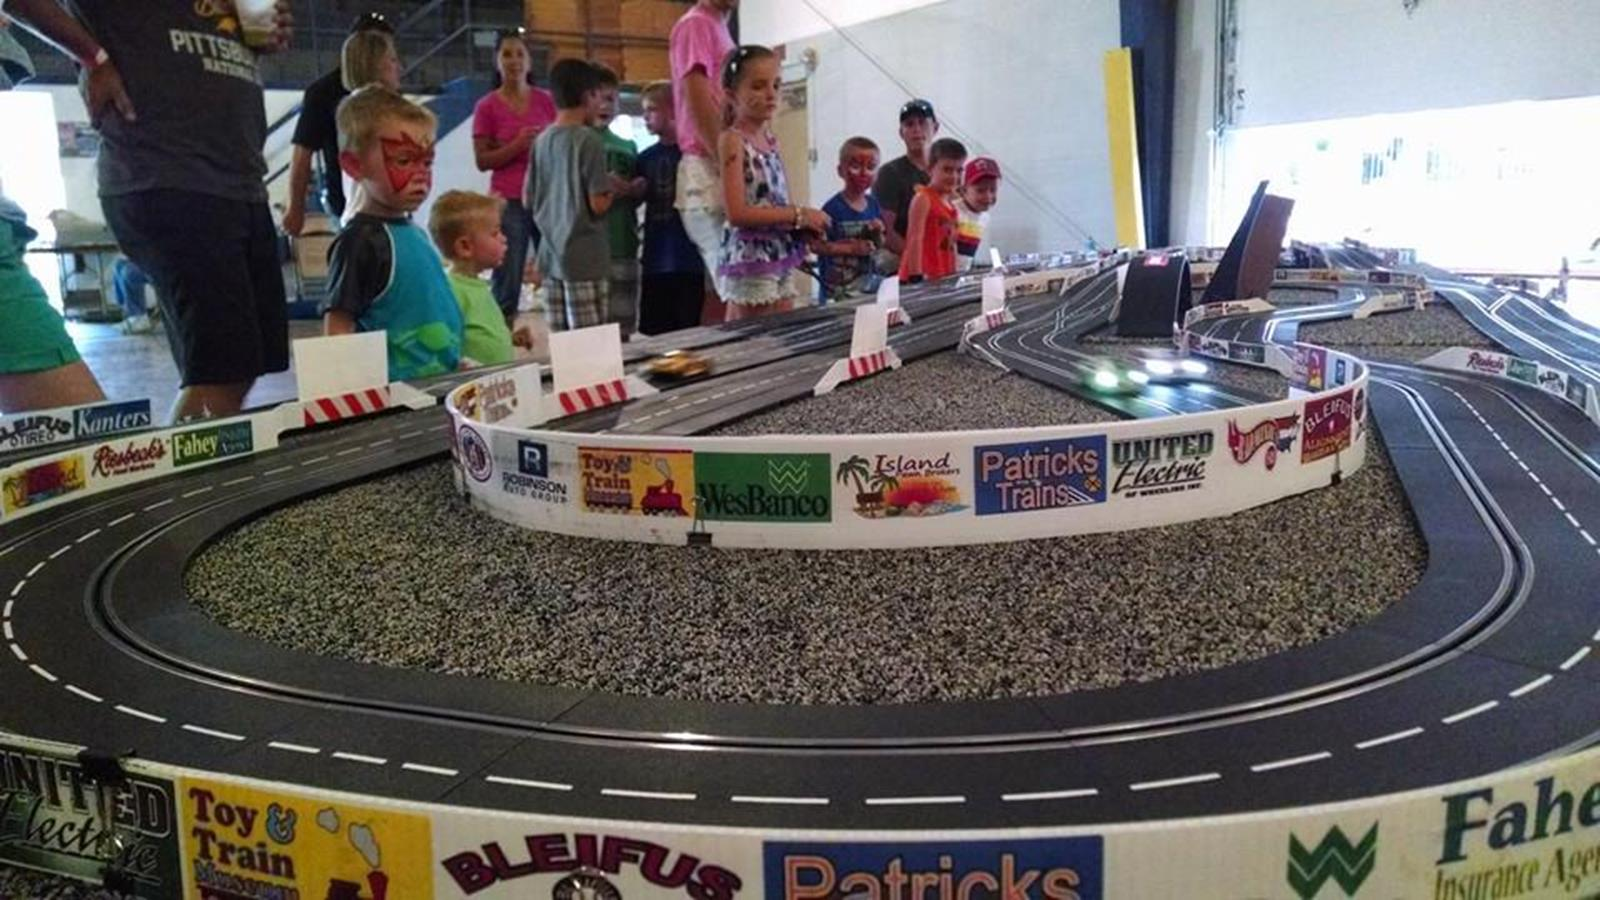 Watching the cars race. Credit: Kruger Toy and Train Museum